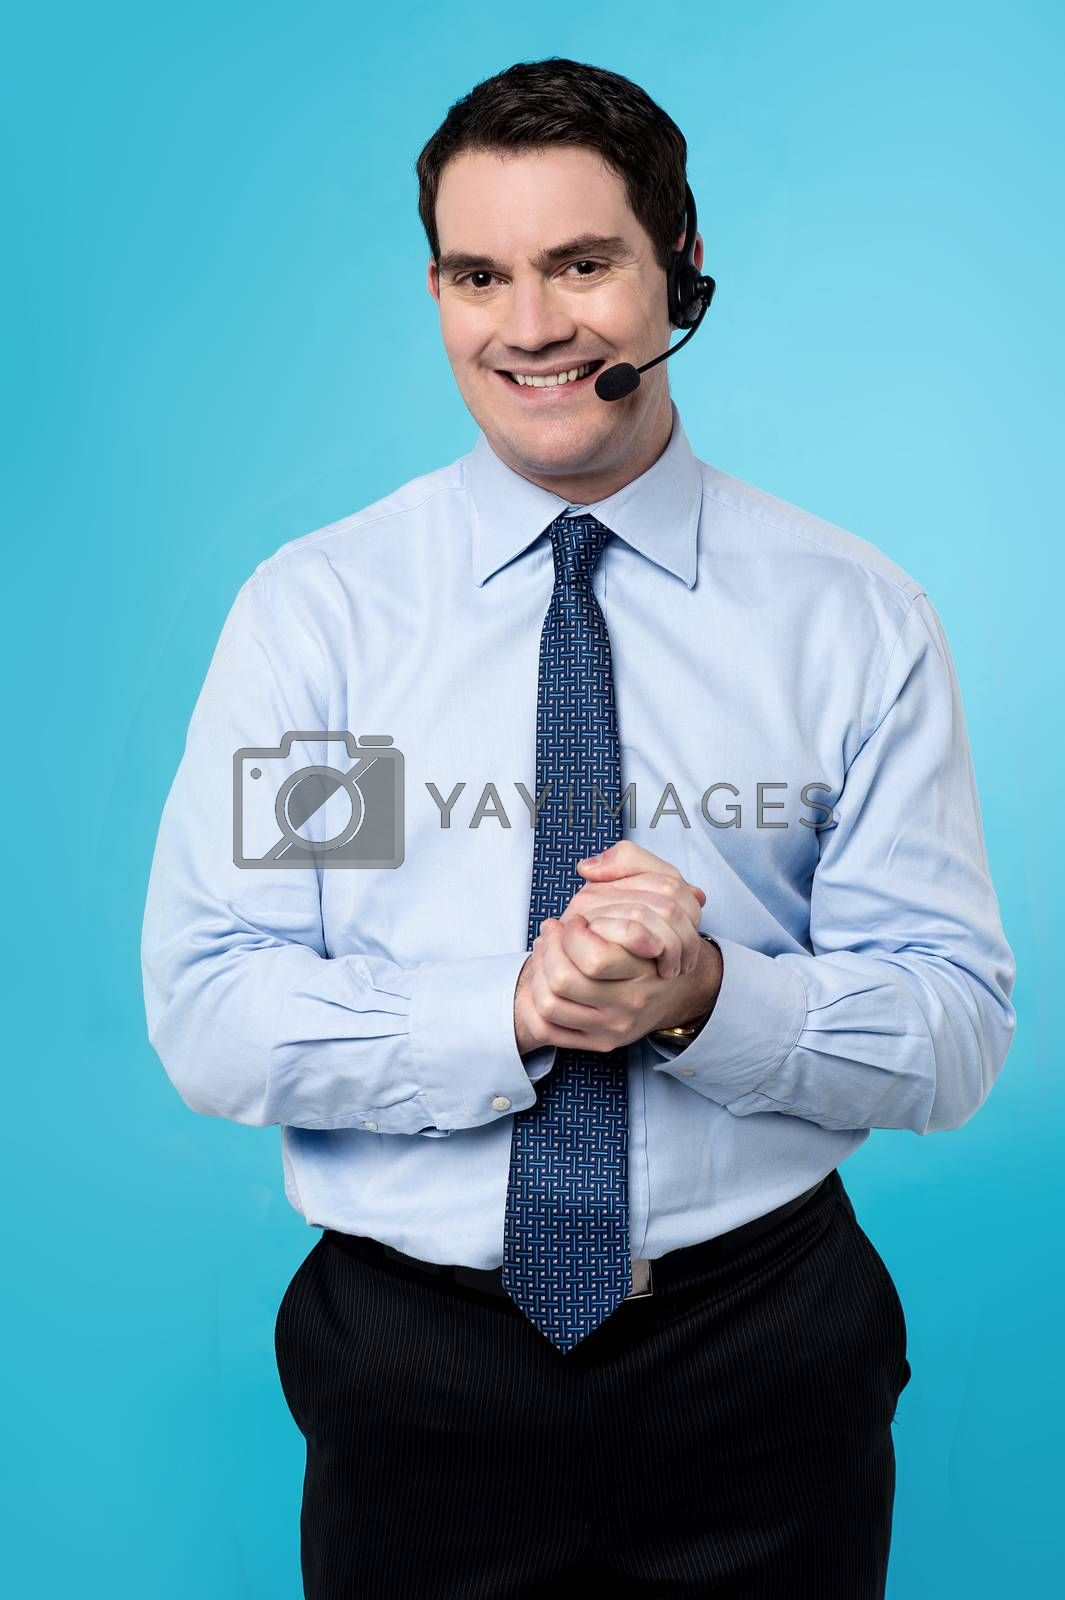 Customer support executive male with clasped hands